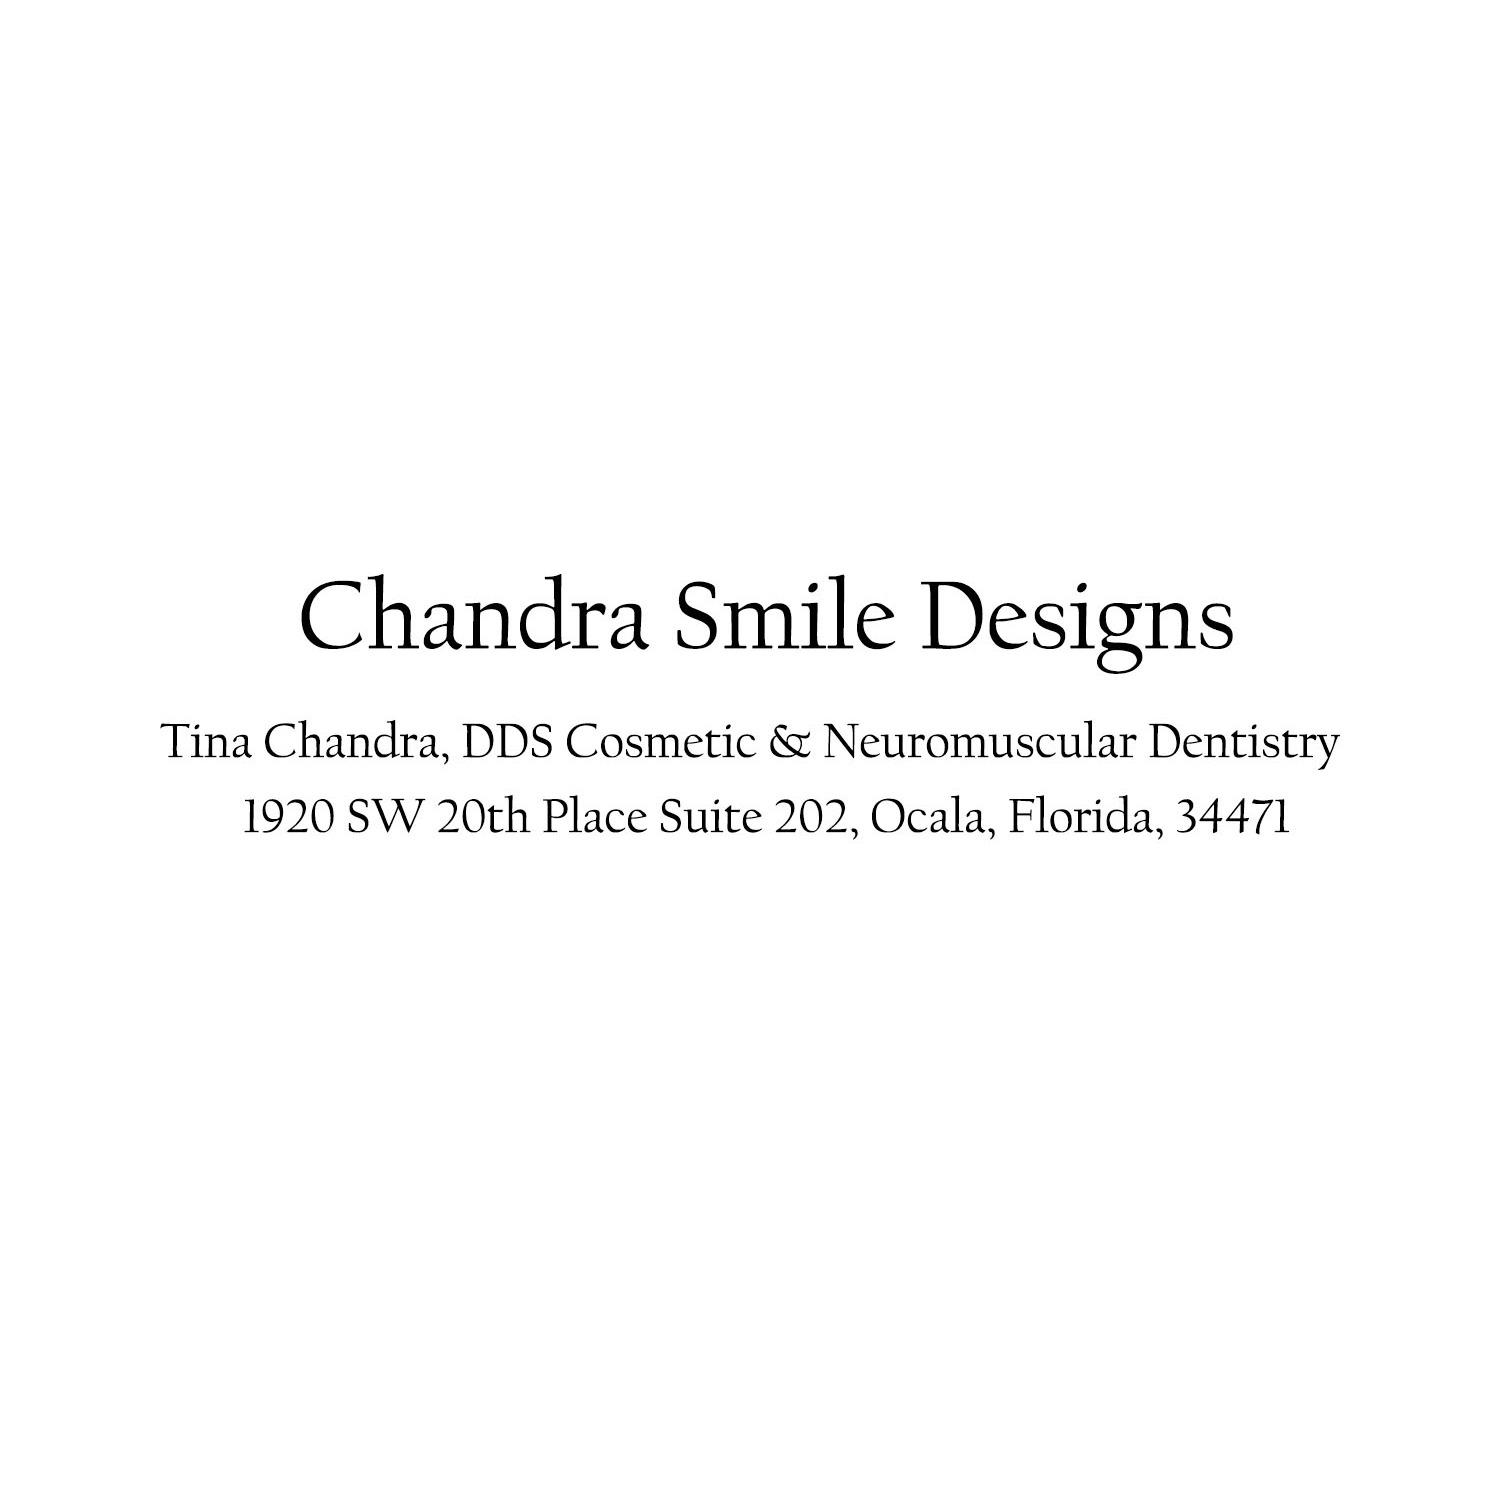 Chandra Smile Designs